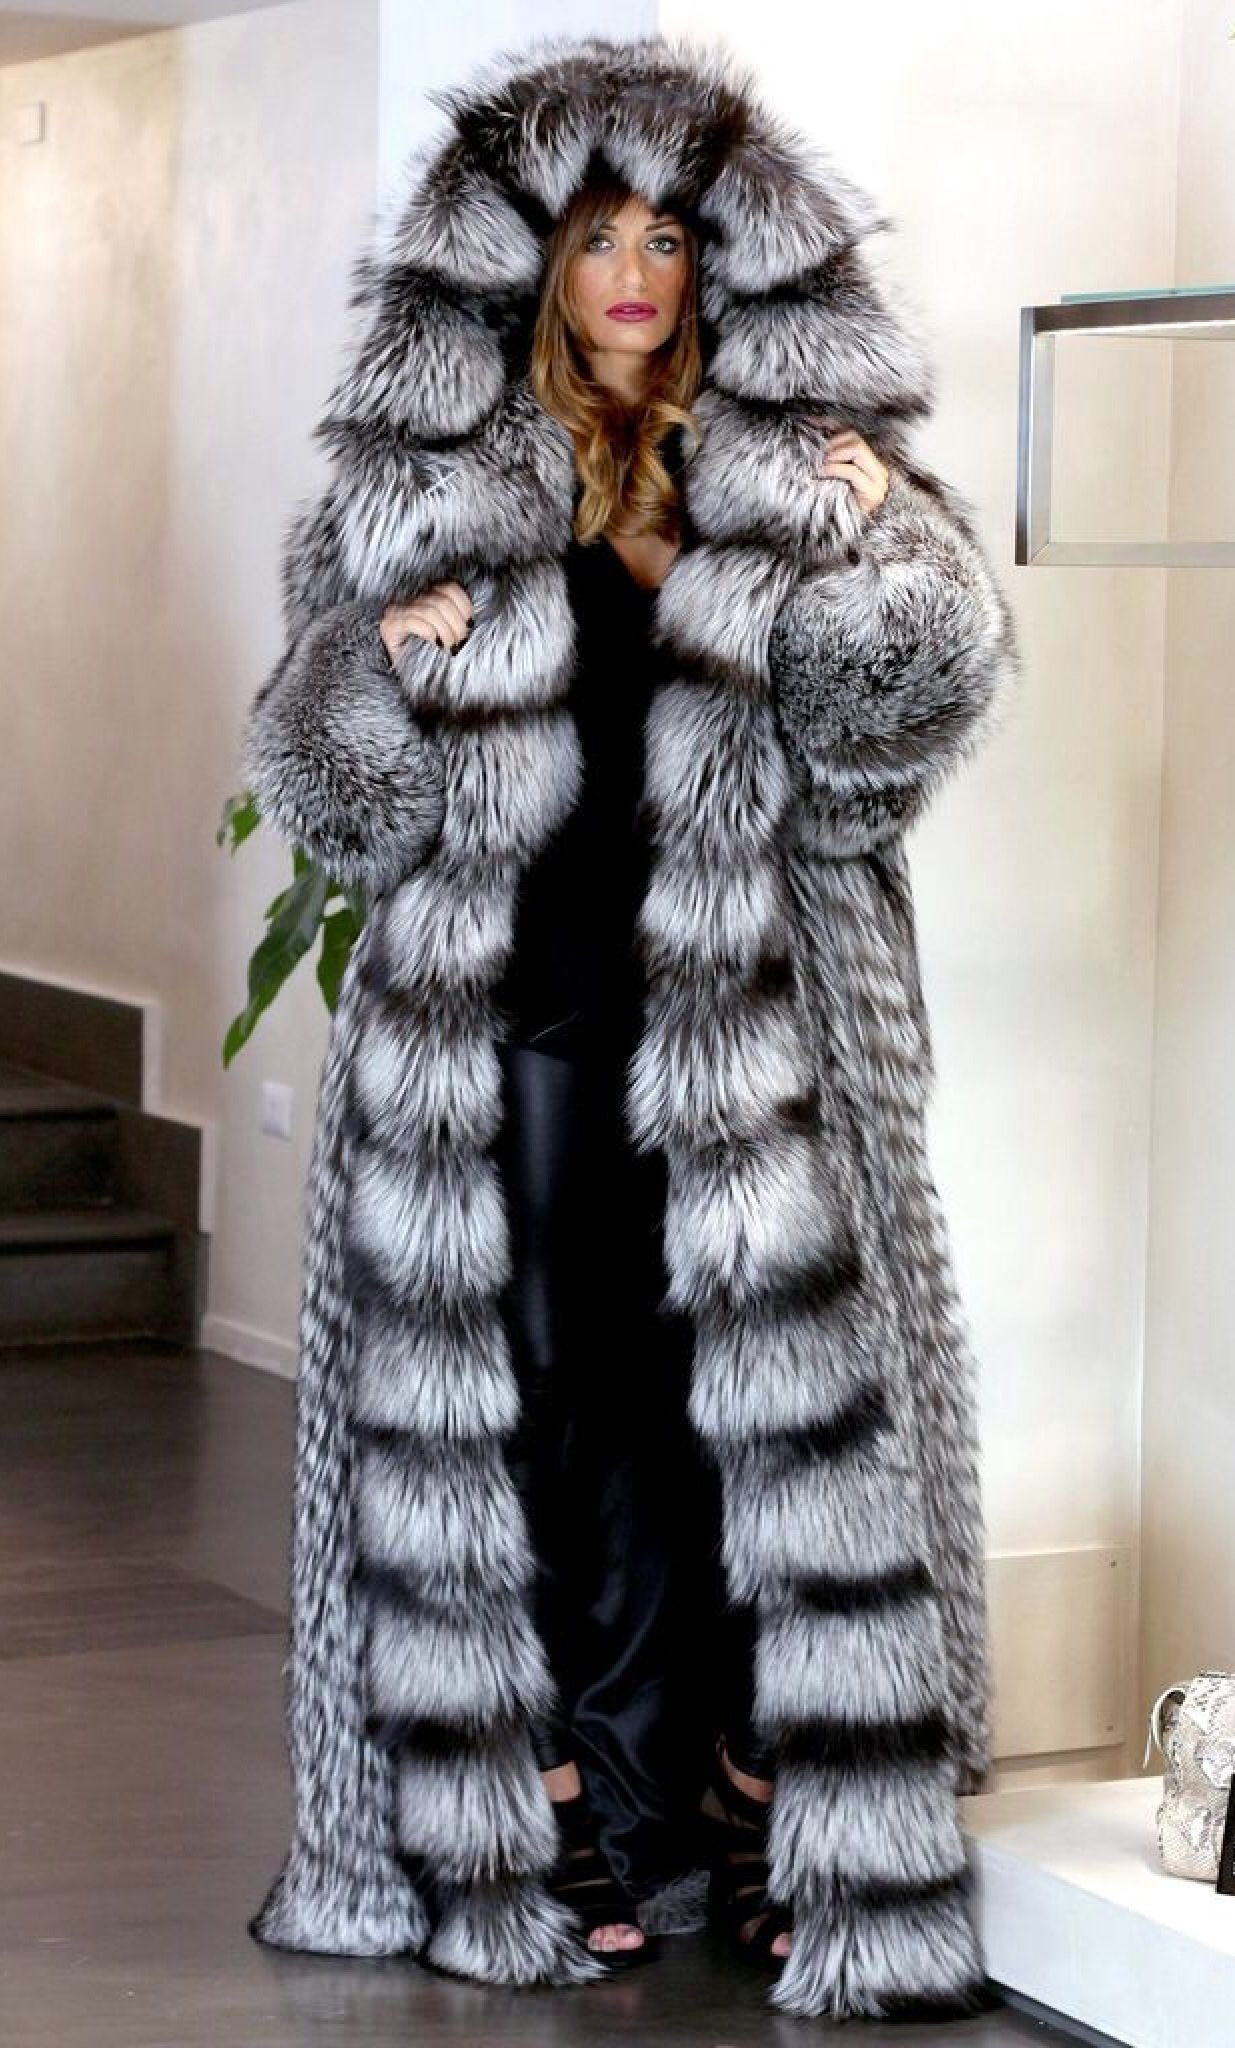 aed8a886dbf Giant hooded Silver fox fur coat